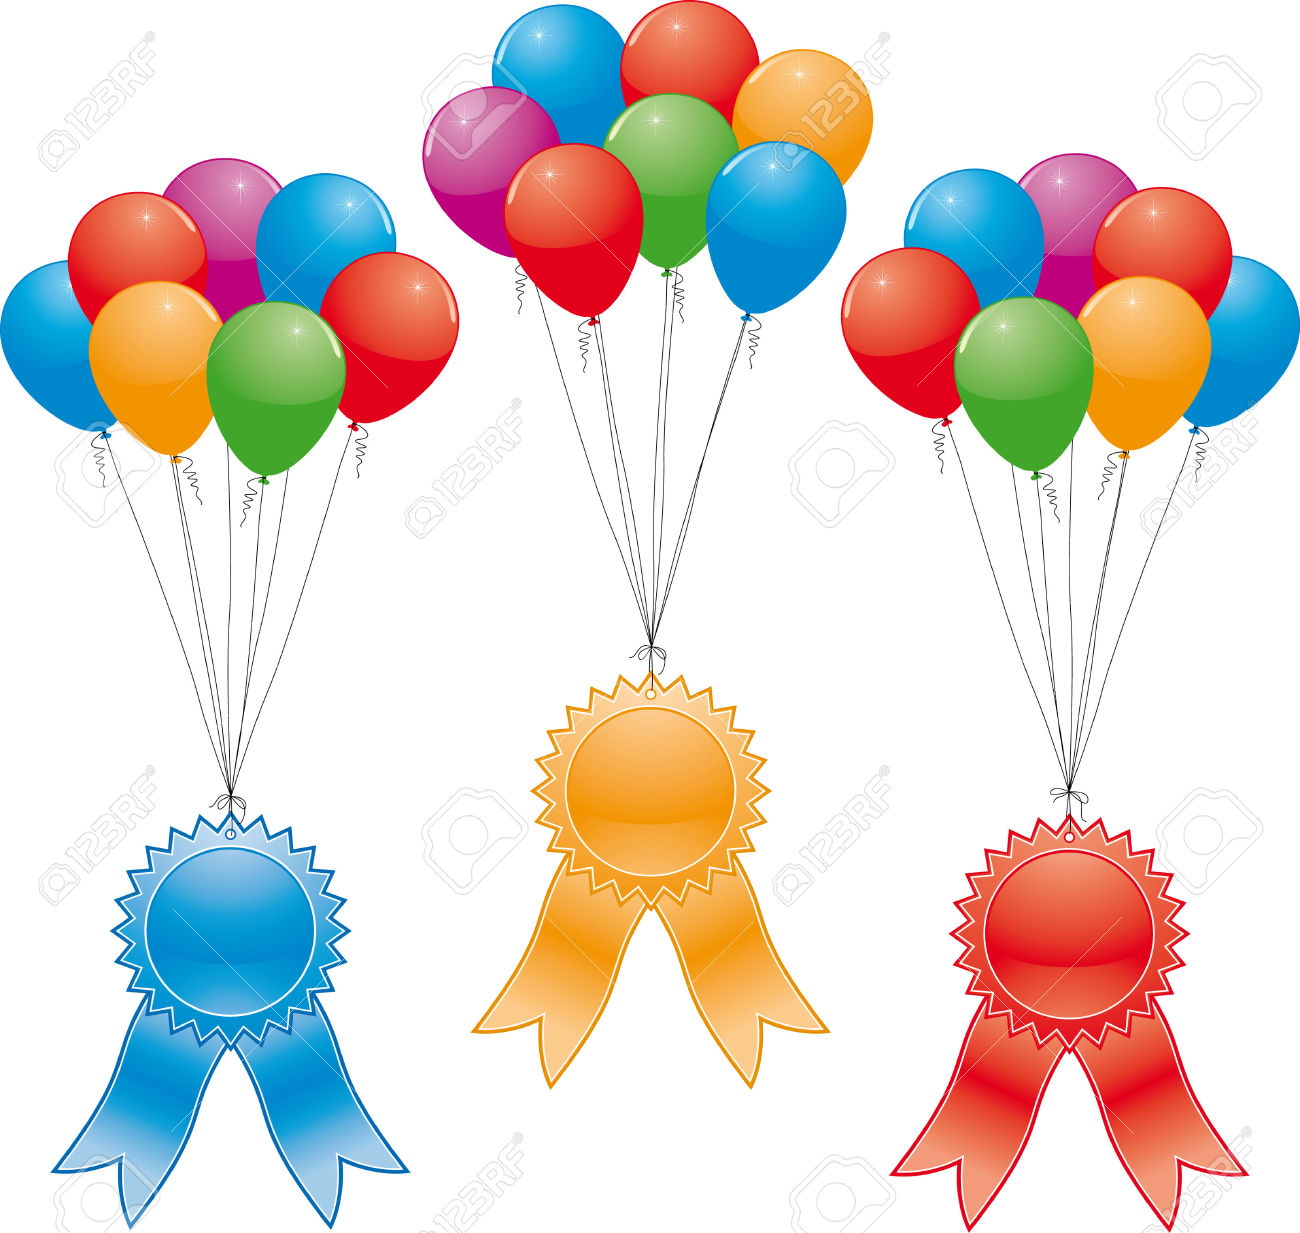 Free Award Ceremony Cliparts, Download Free Clip Art, Free.